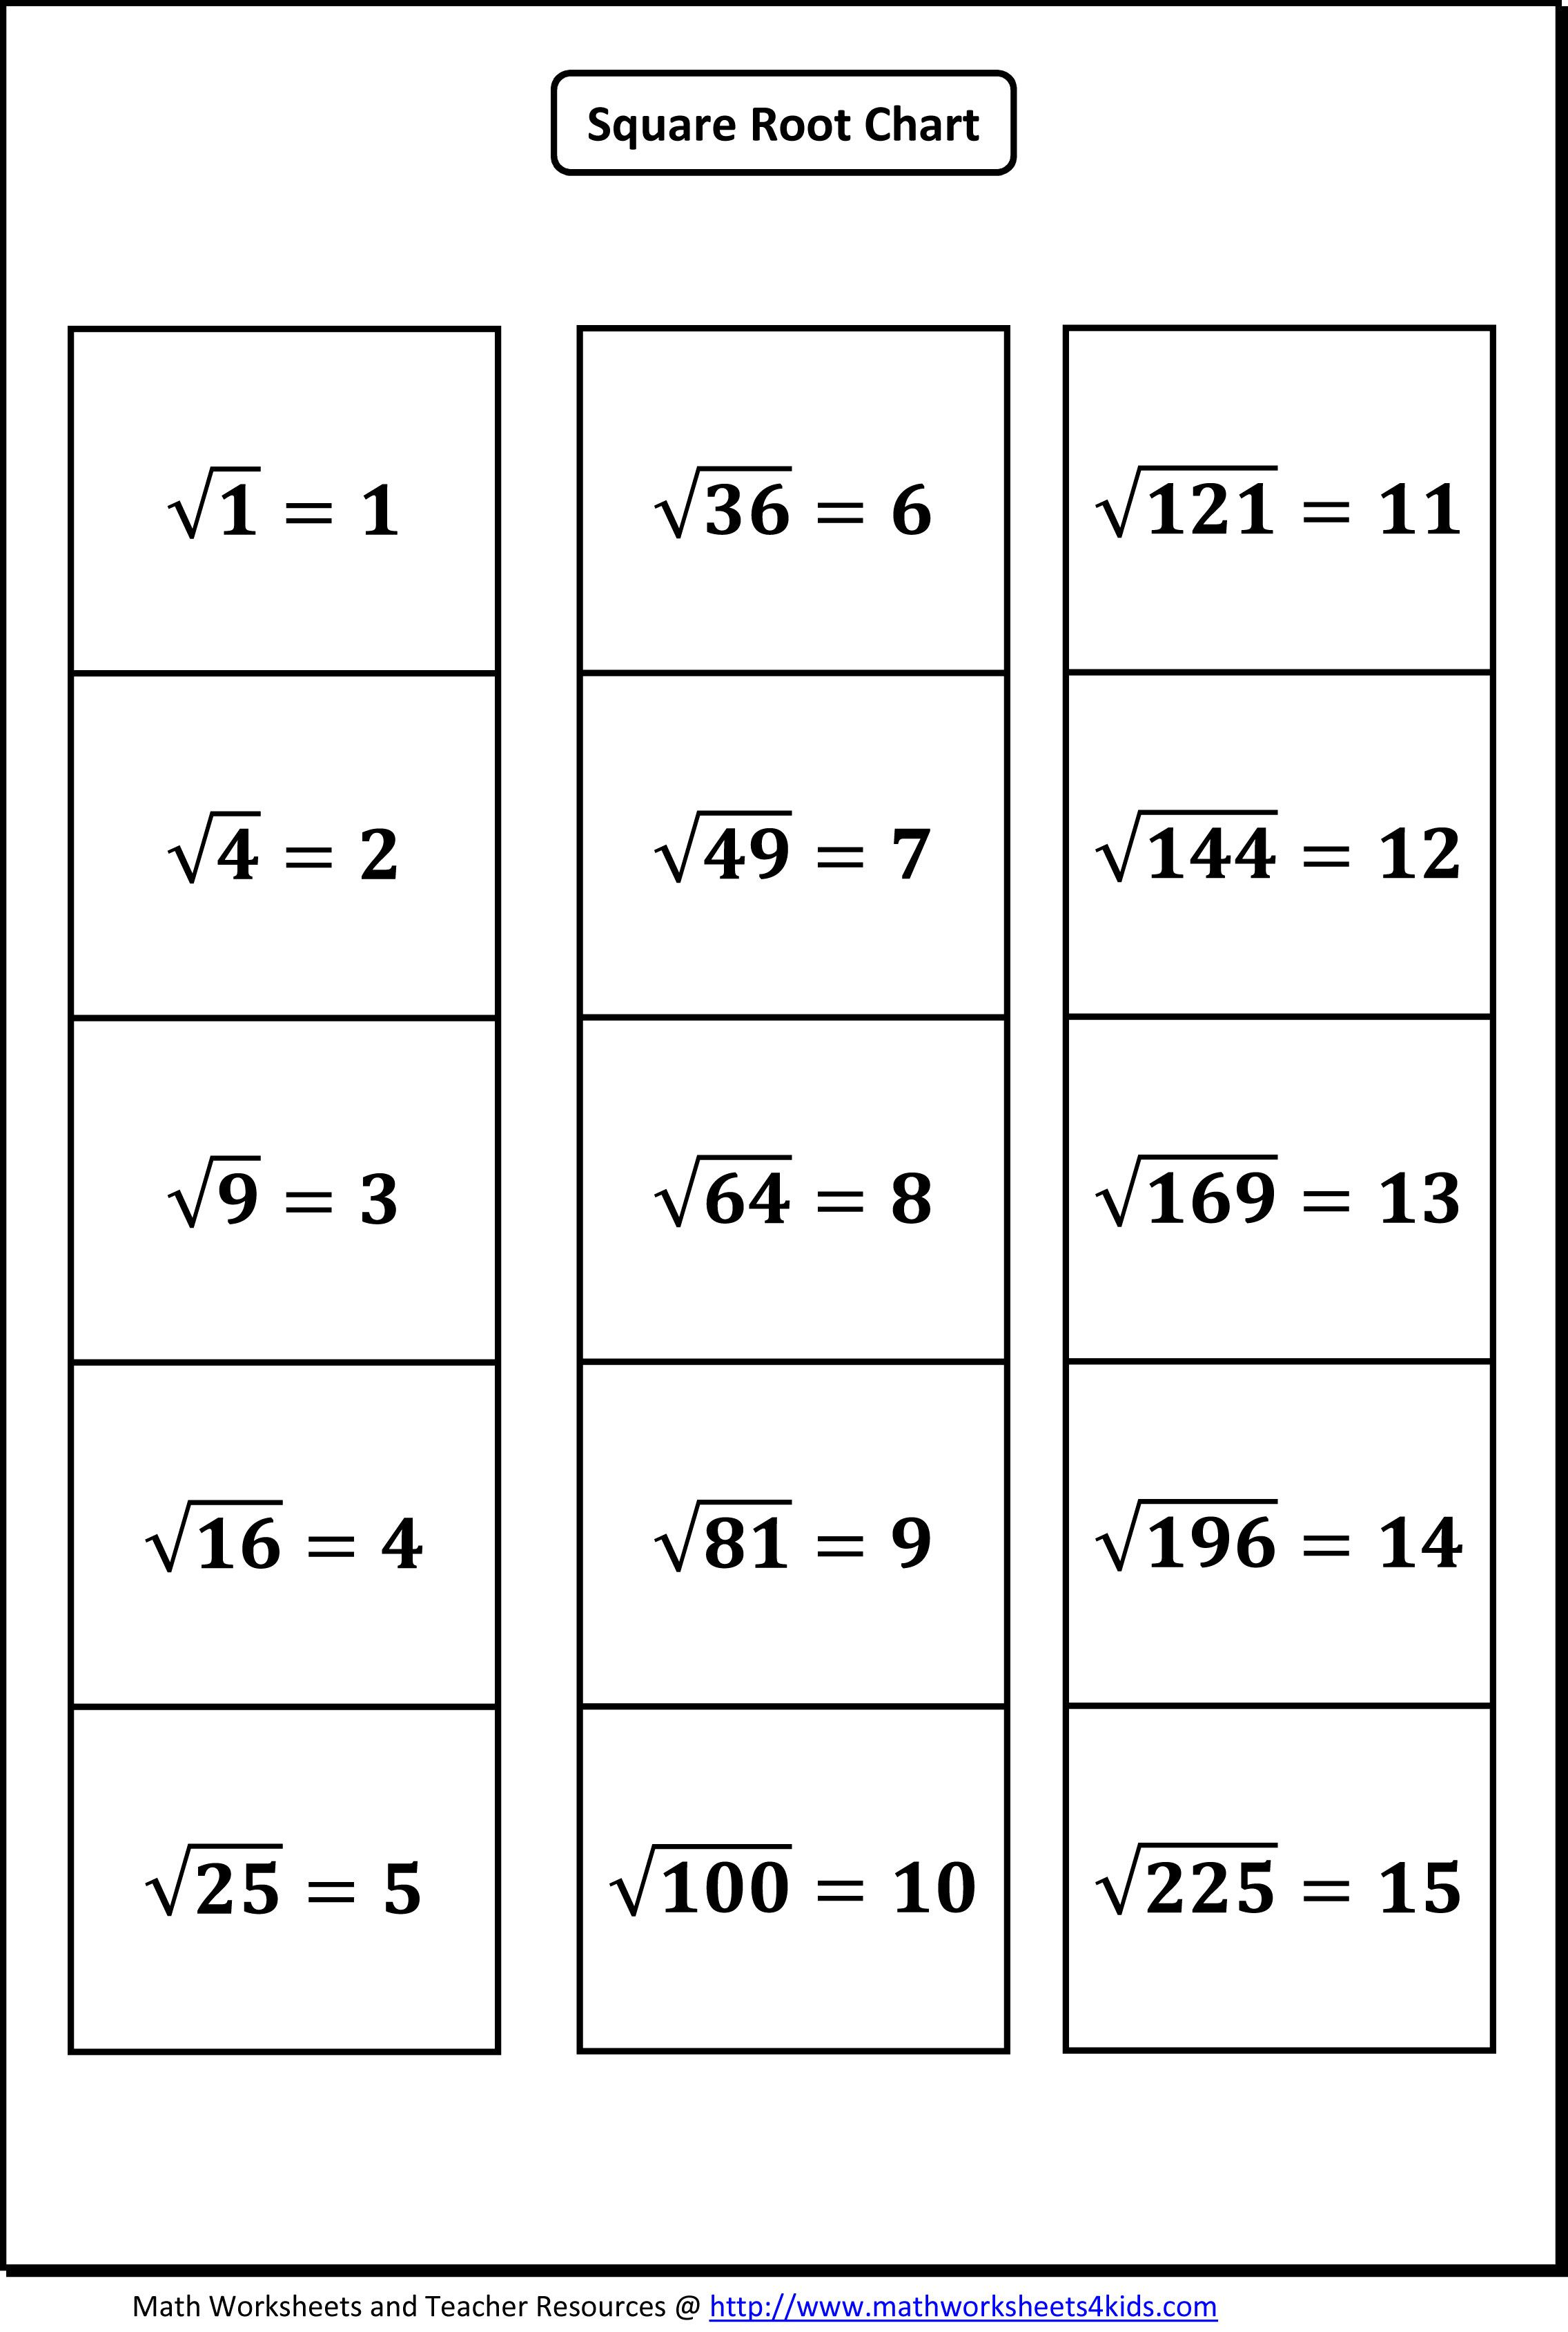 Worksheets Square Roots And Cube Roots Worksheet kid middle school and the square on pinterest root worksheets find of whole numbers fractions decimals